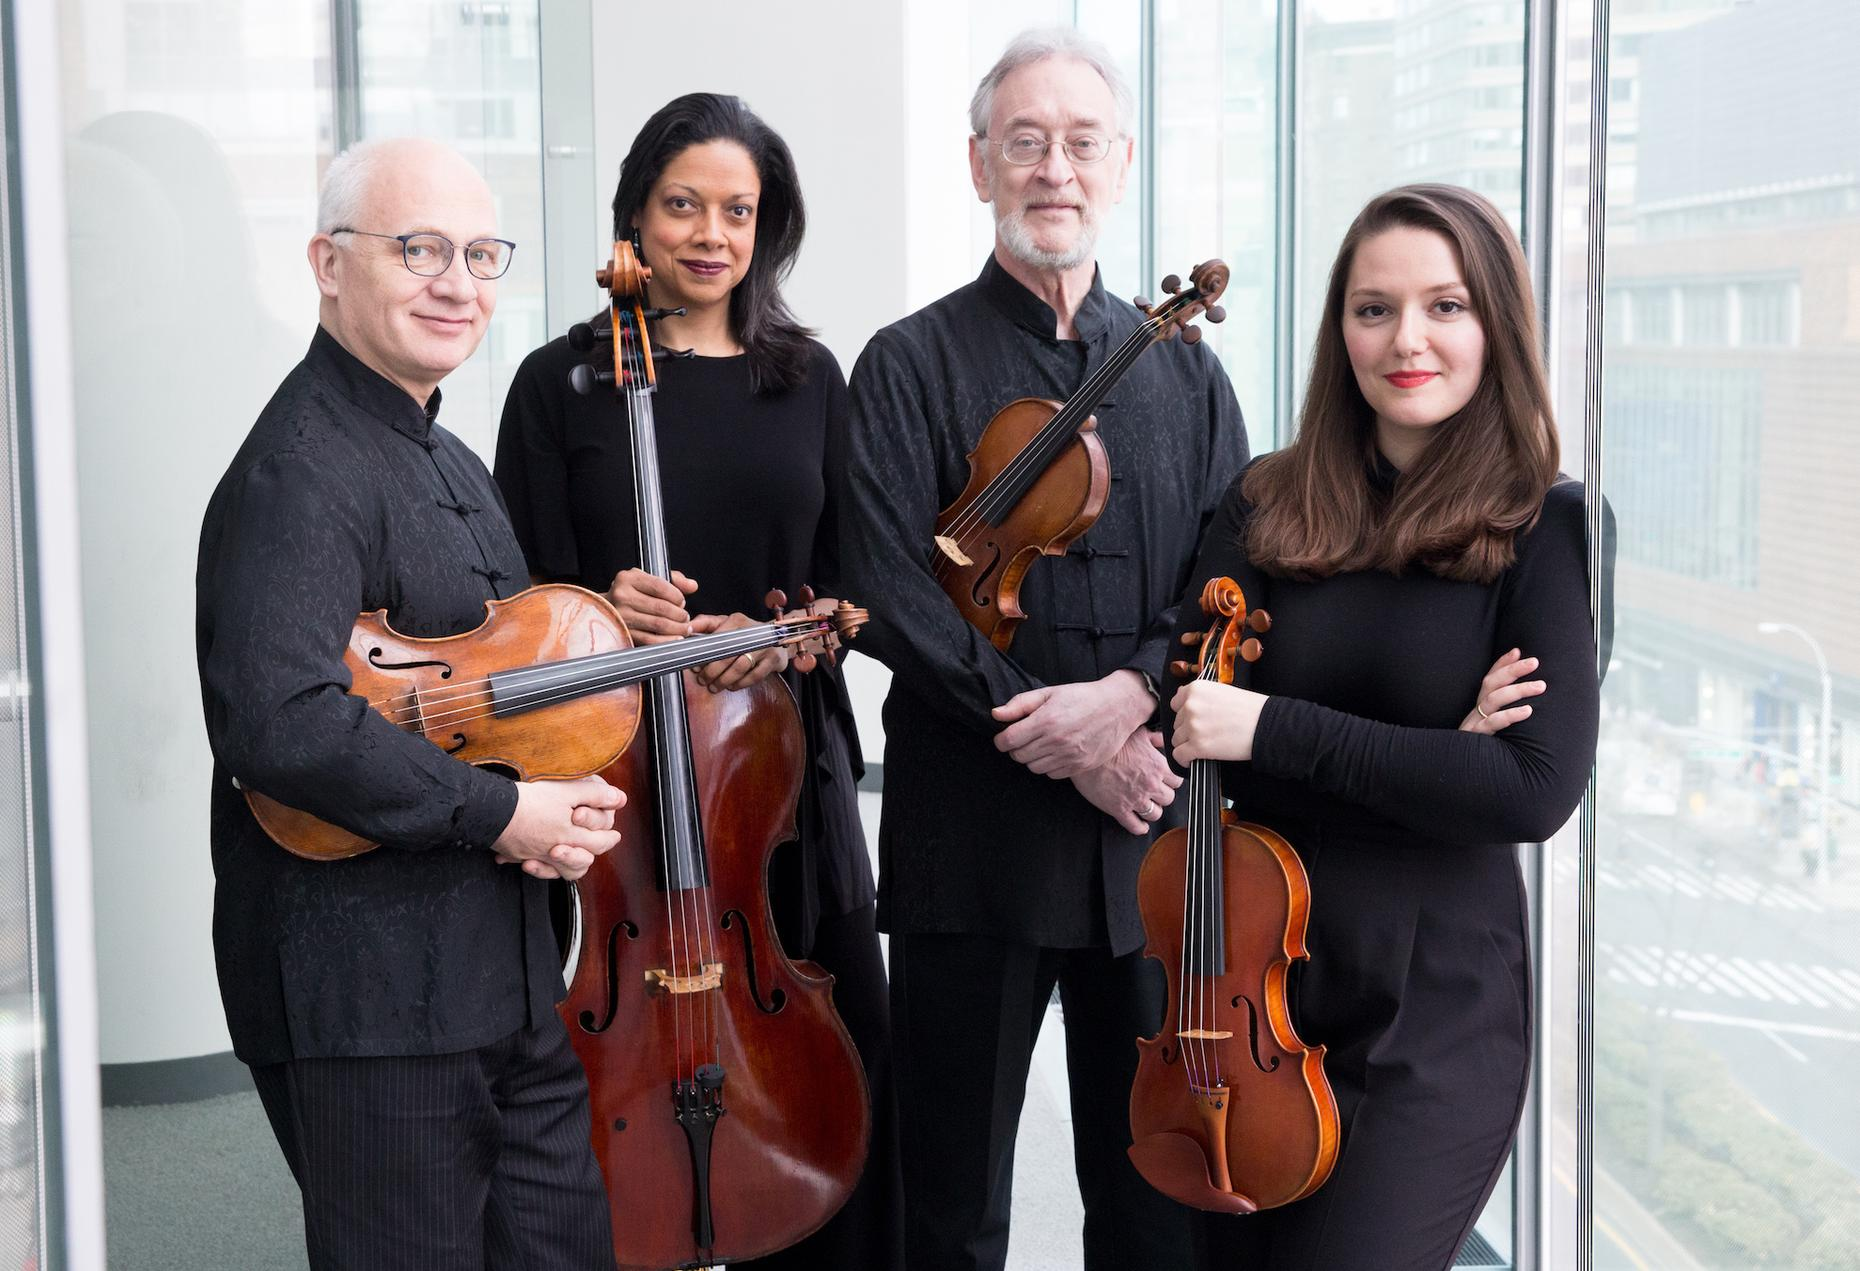 Tomorrow: The Juilliard String Quartet Performs Live | Midday Masterpieces